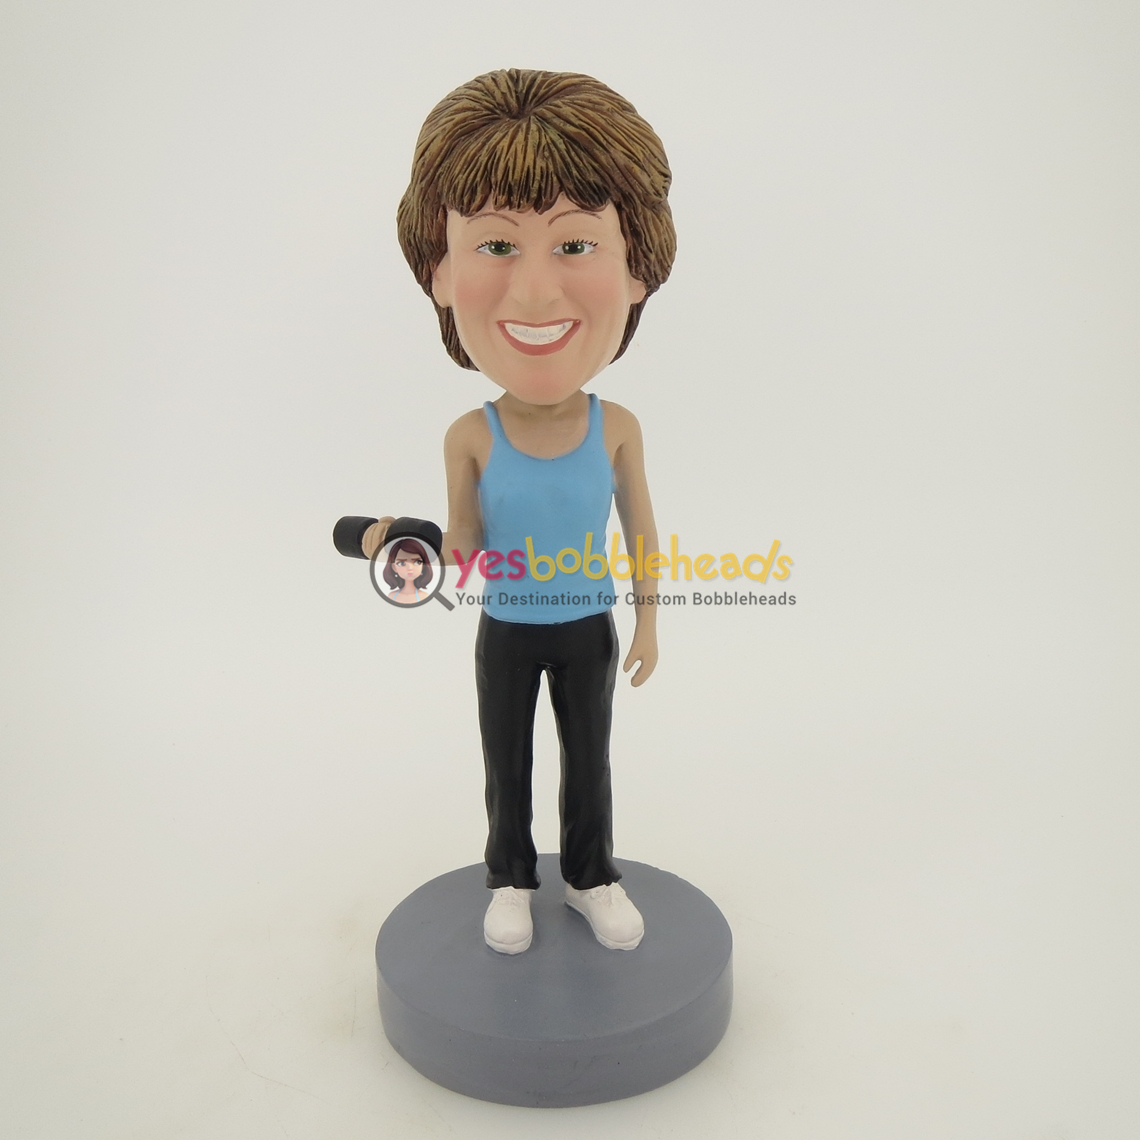 Picture of Custom Bobblehead Doll: Body Building Woman